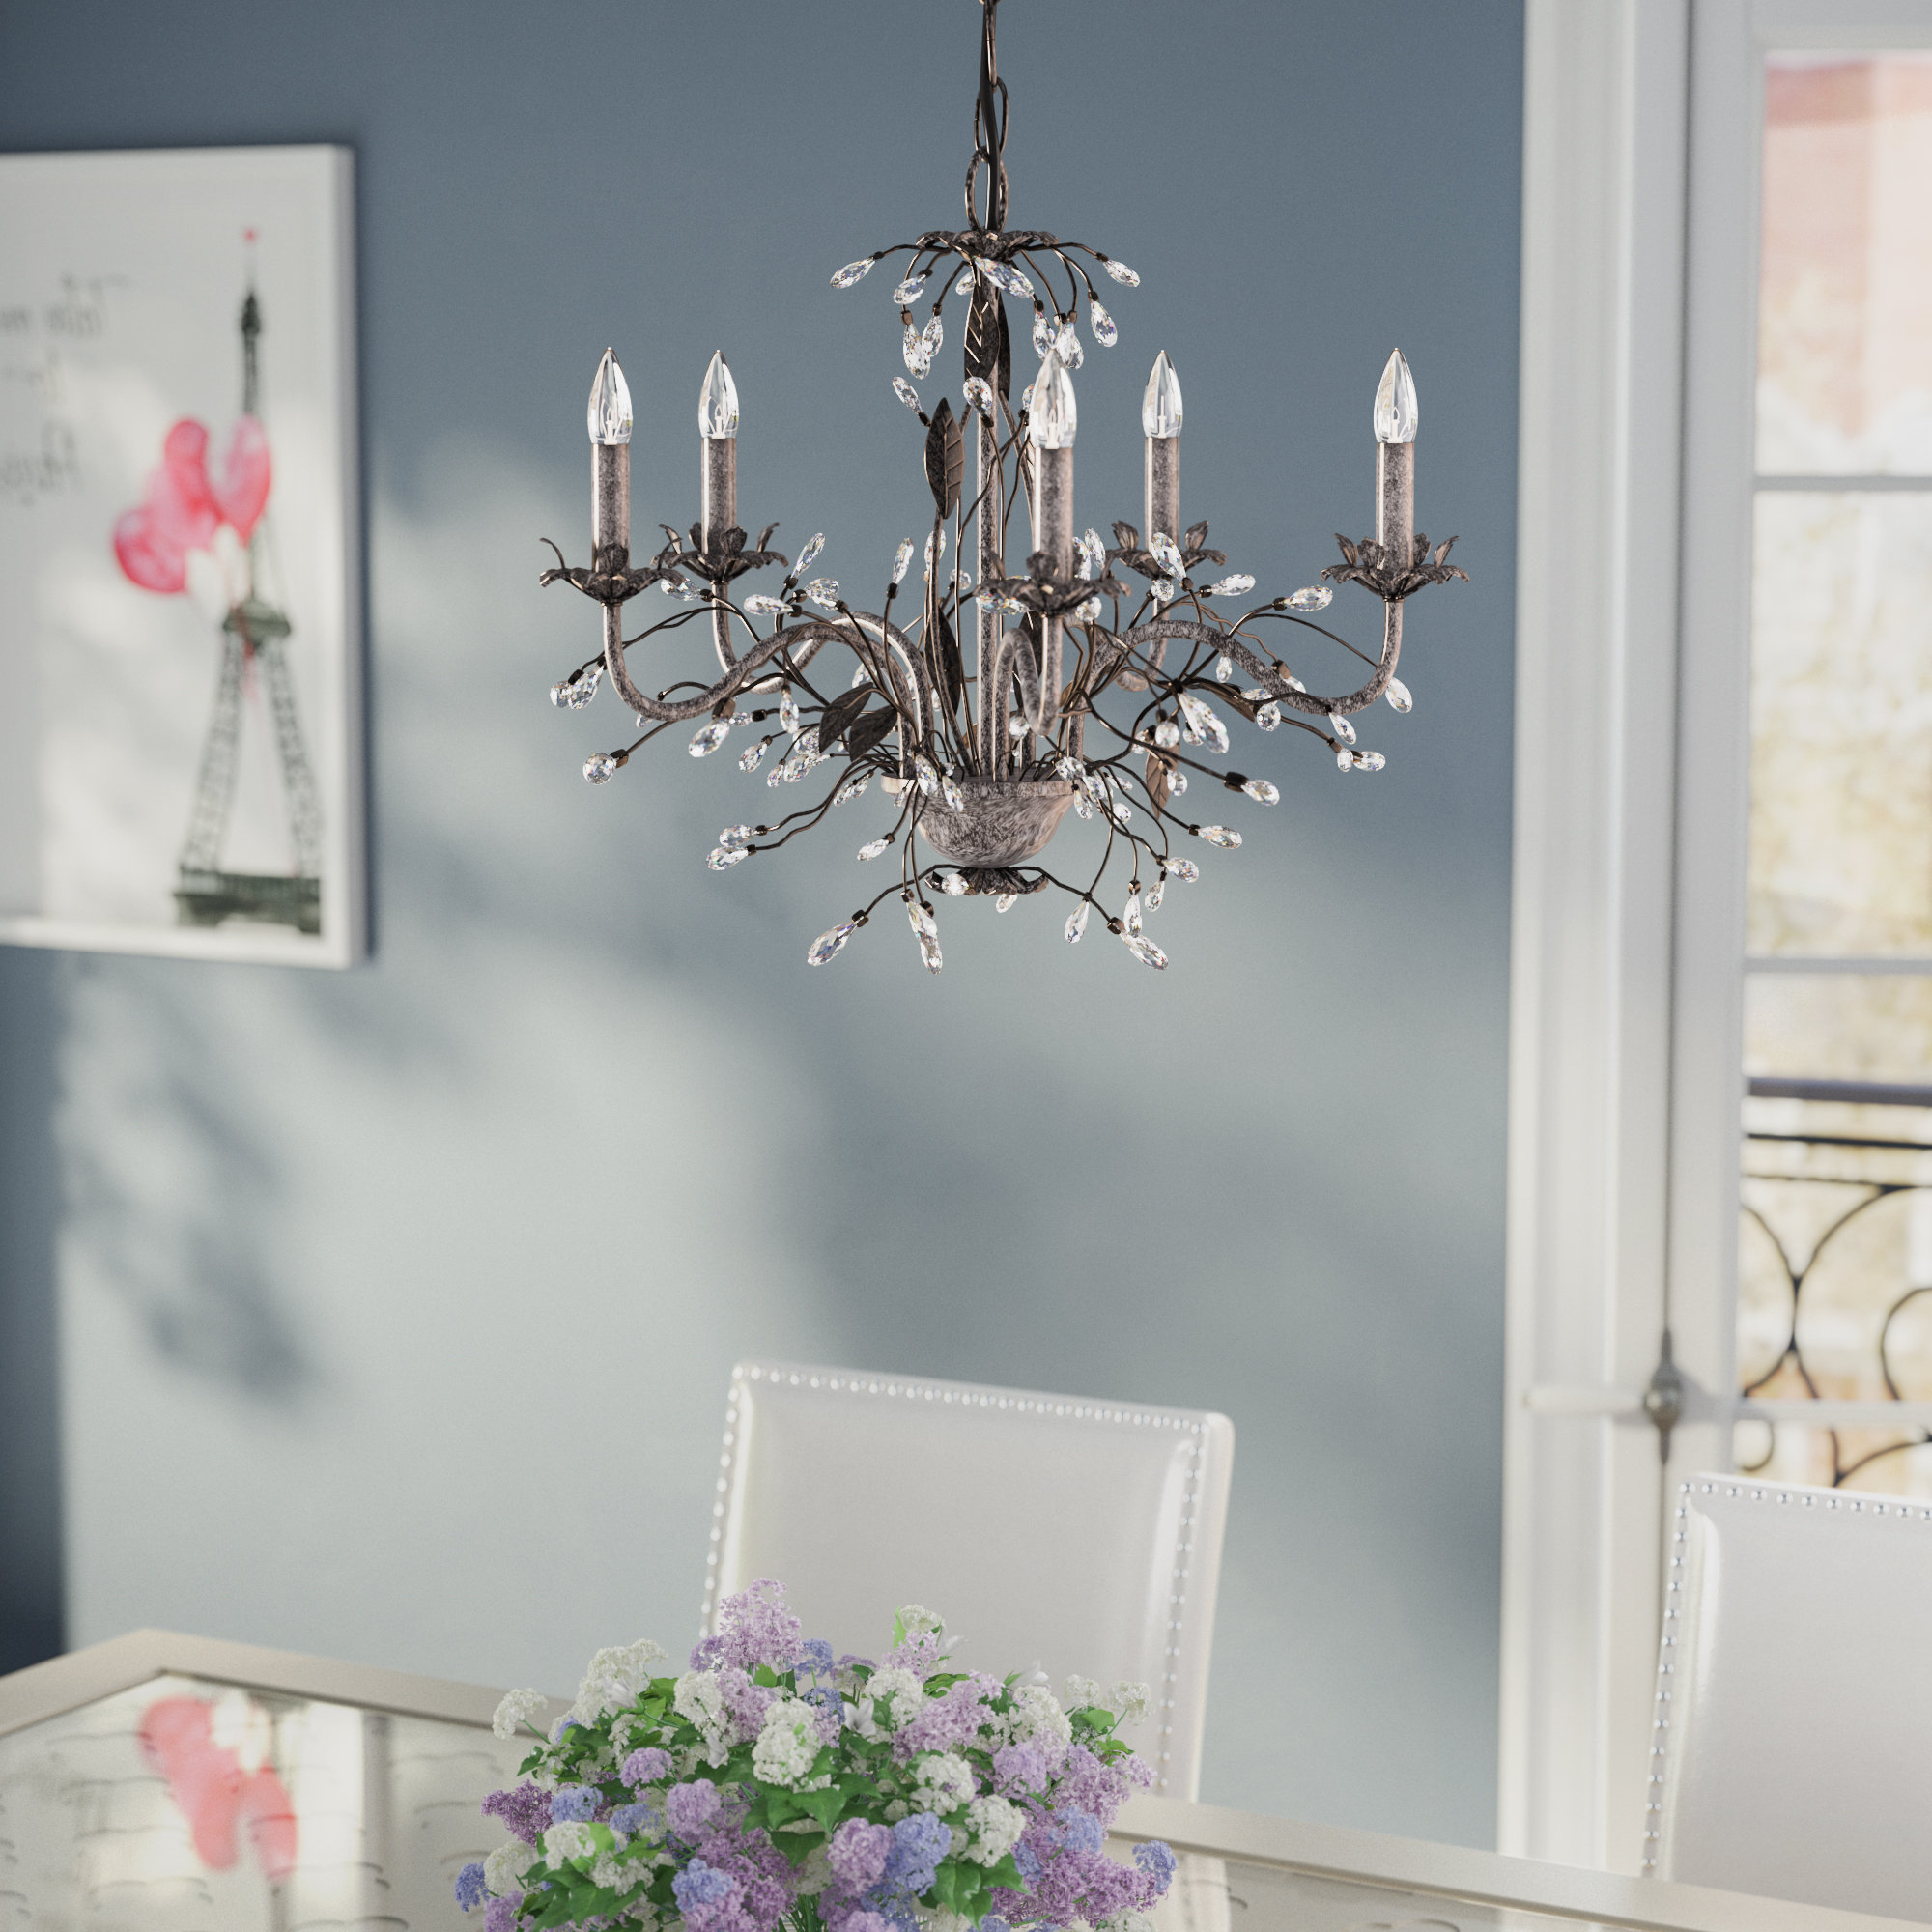 Hesse 5 Light Candle-Style Chandelier pertaining to Well-liked Blanchette 5-Light Candle Style Chandeliers